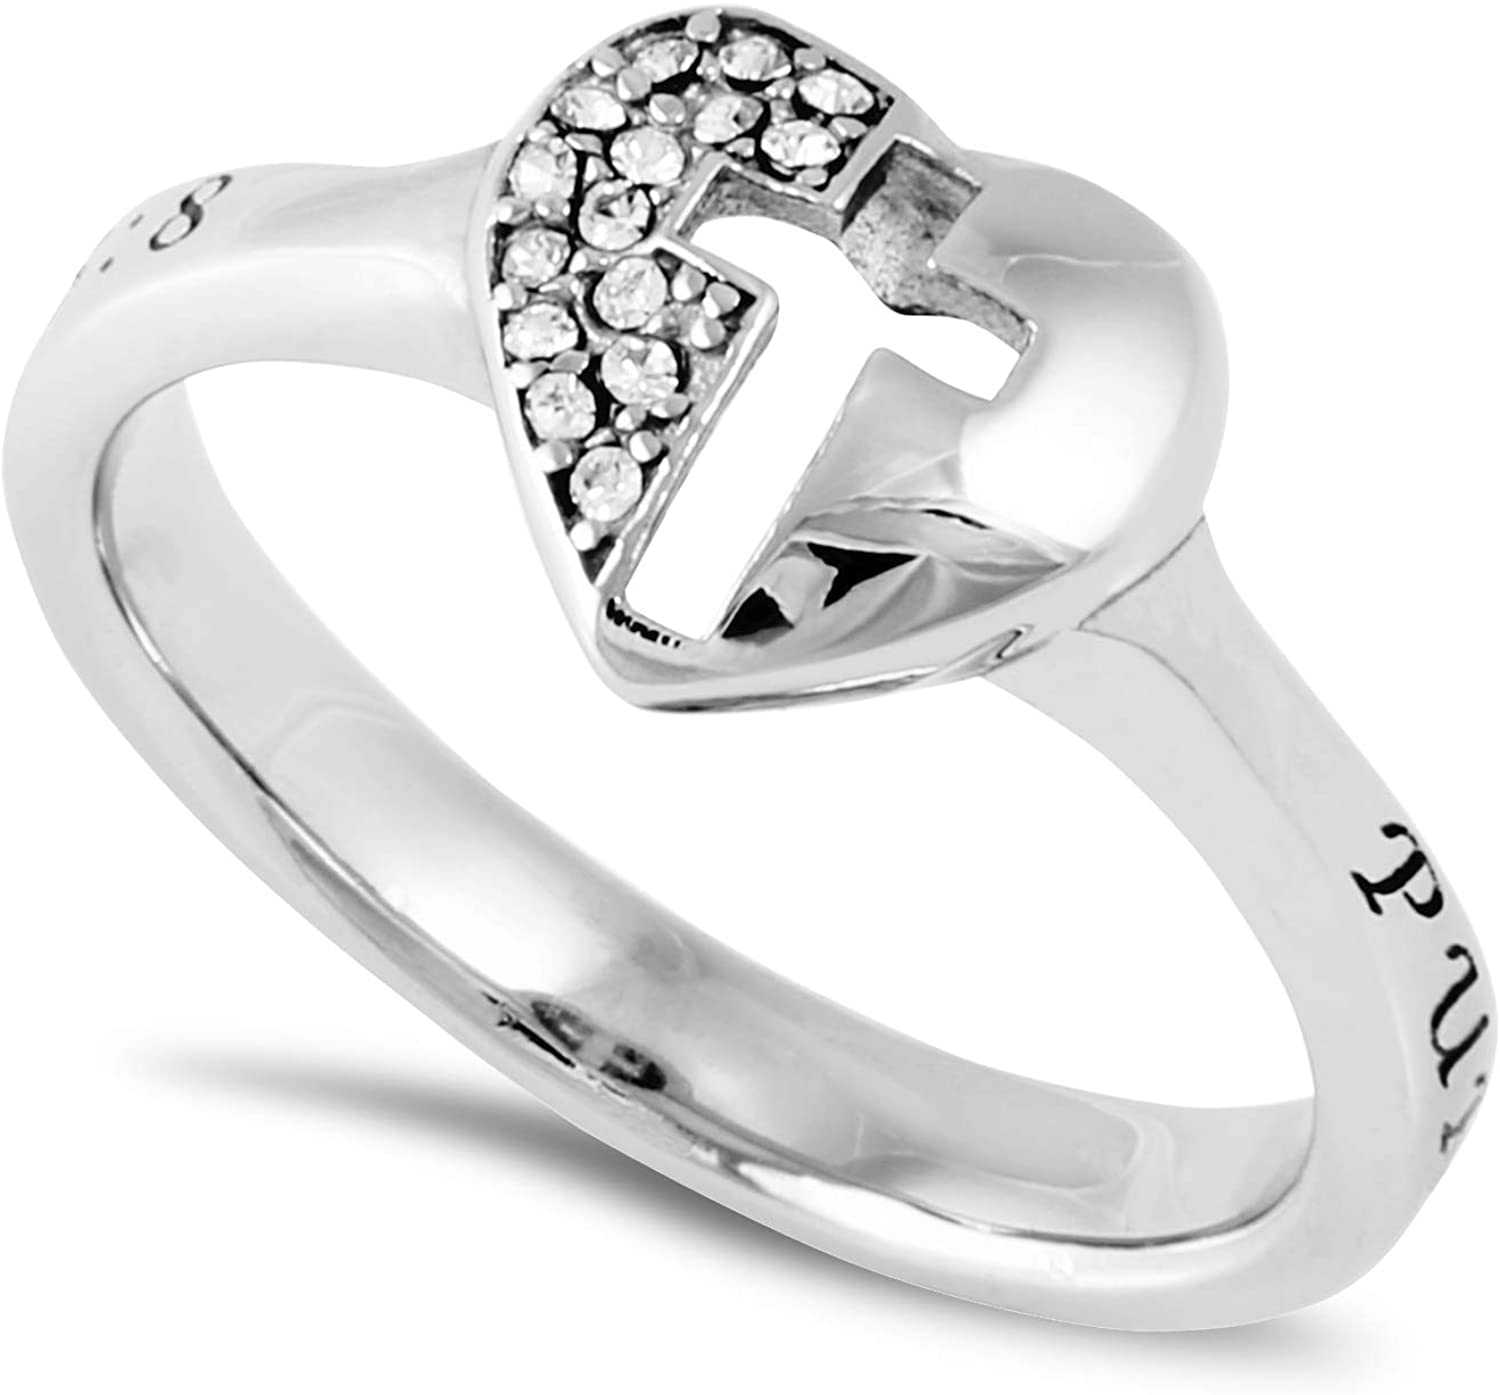 Lady/'s Stainless Steel Ring with Cubic Zirconia Gem Non-Tarnish US Sizes 5-8 NEW